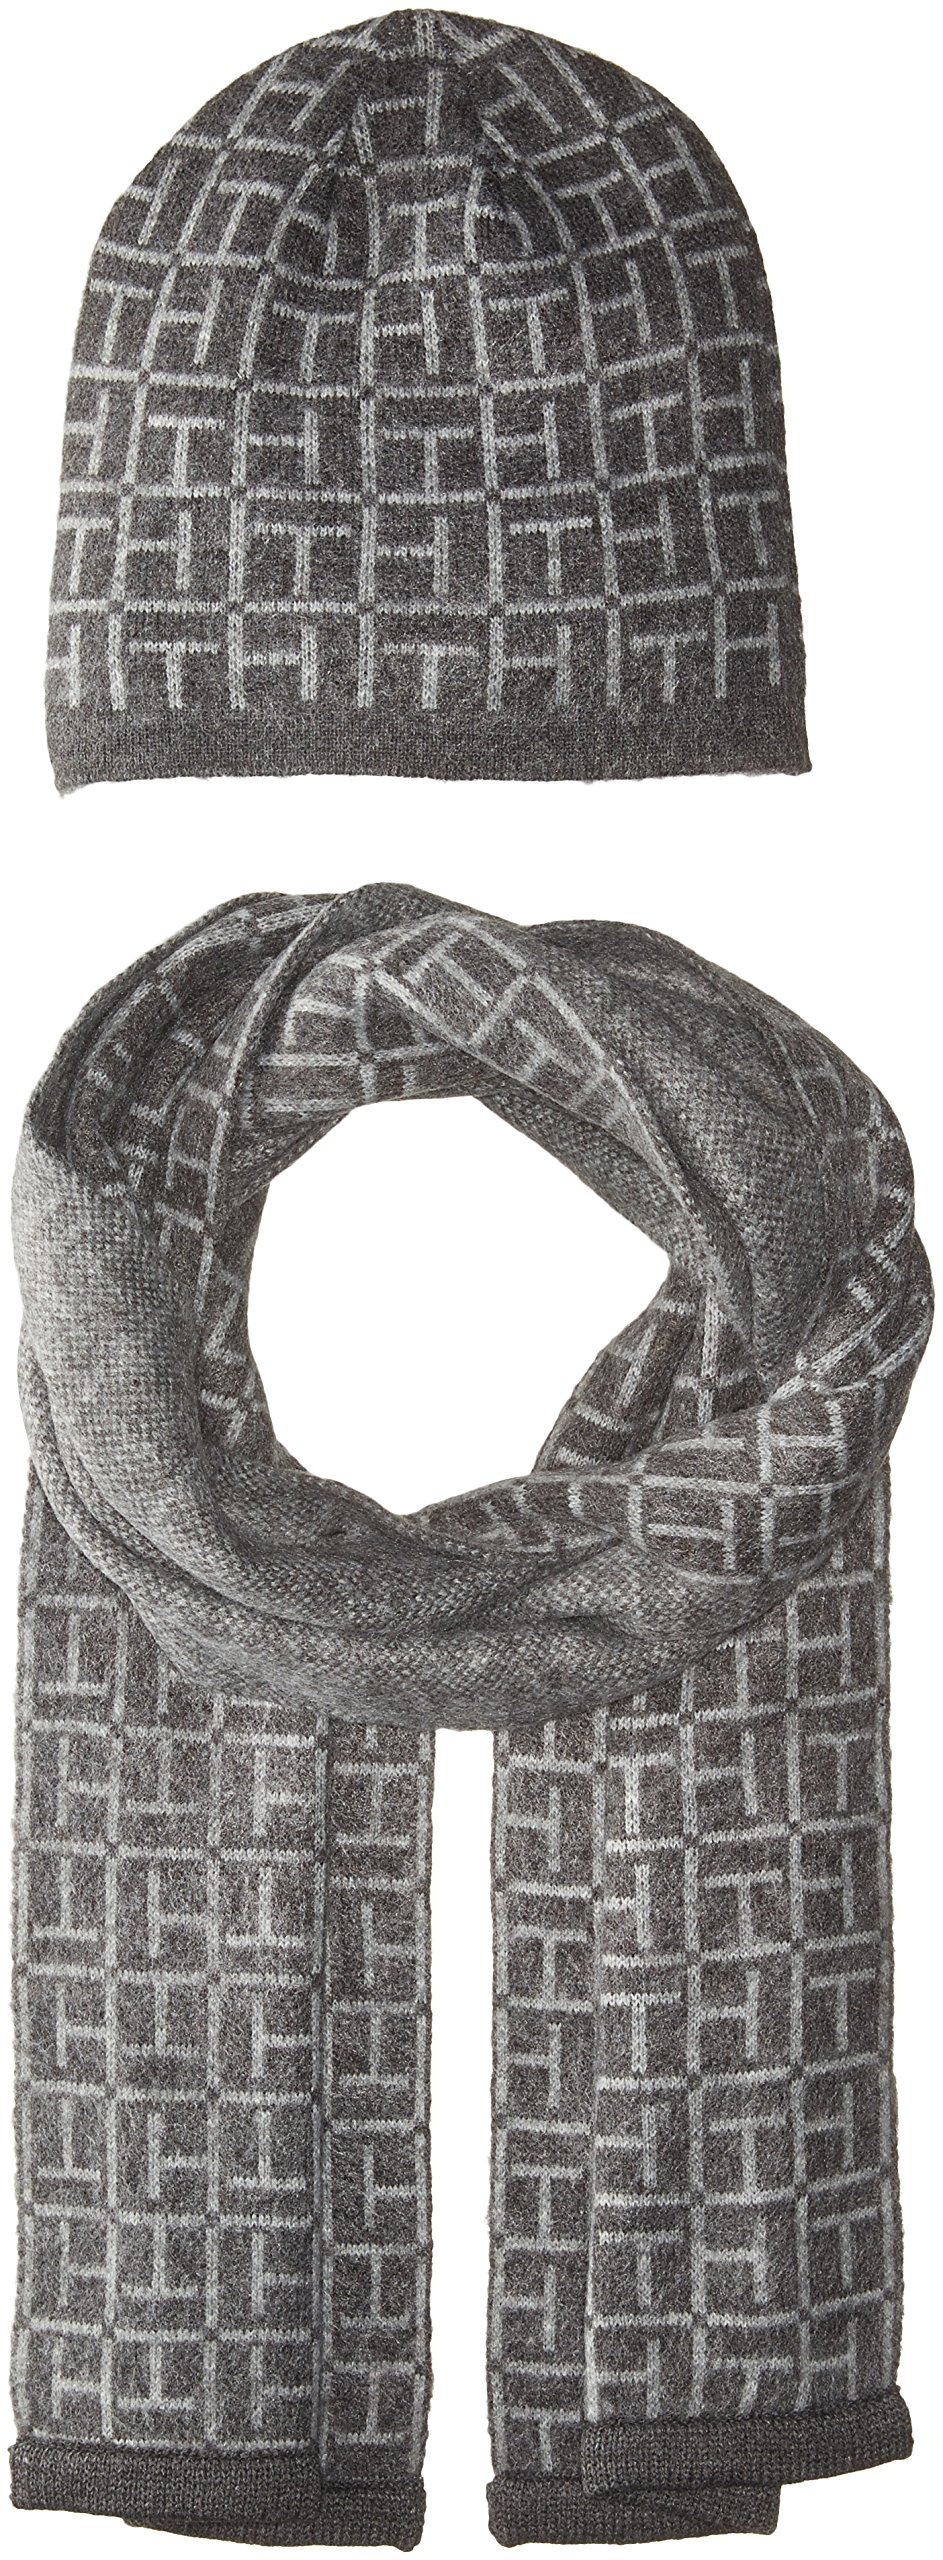 Tommy Hilfiger Women's Hat and Scarf Set, Meteorite, One Size